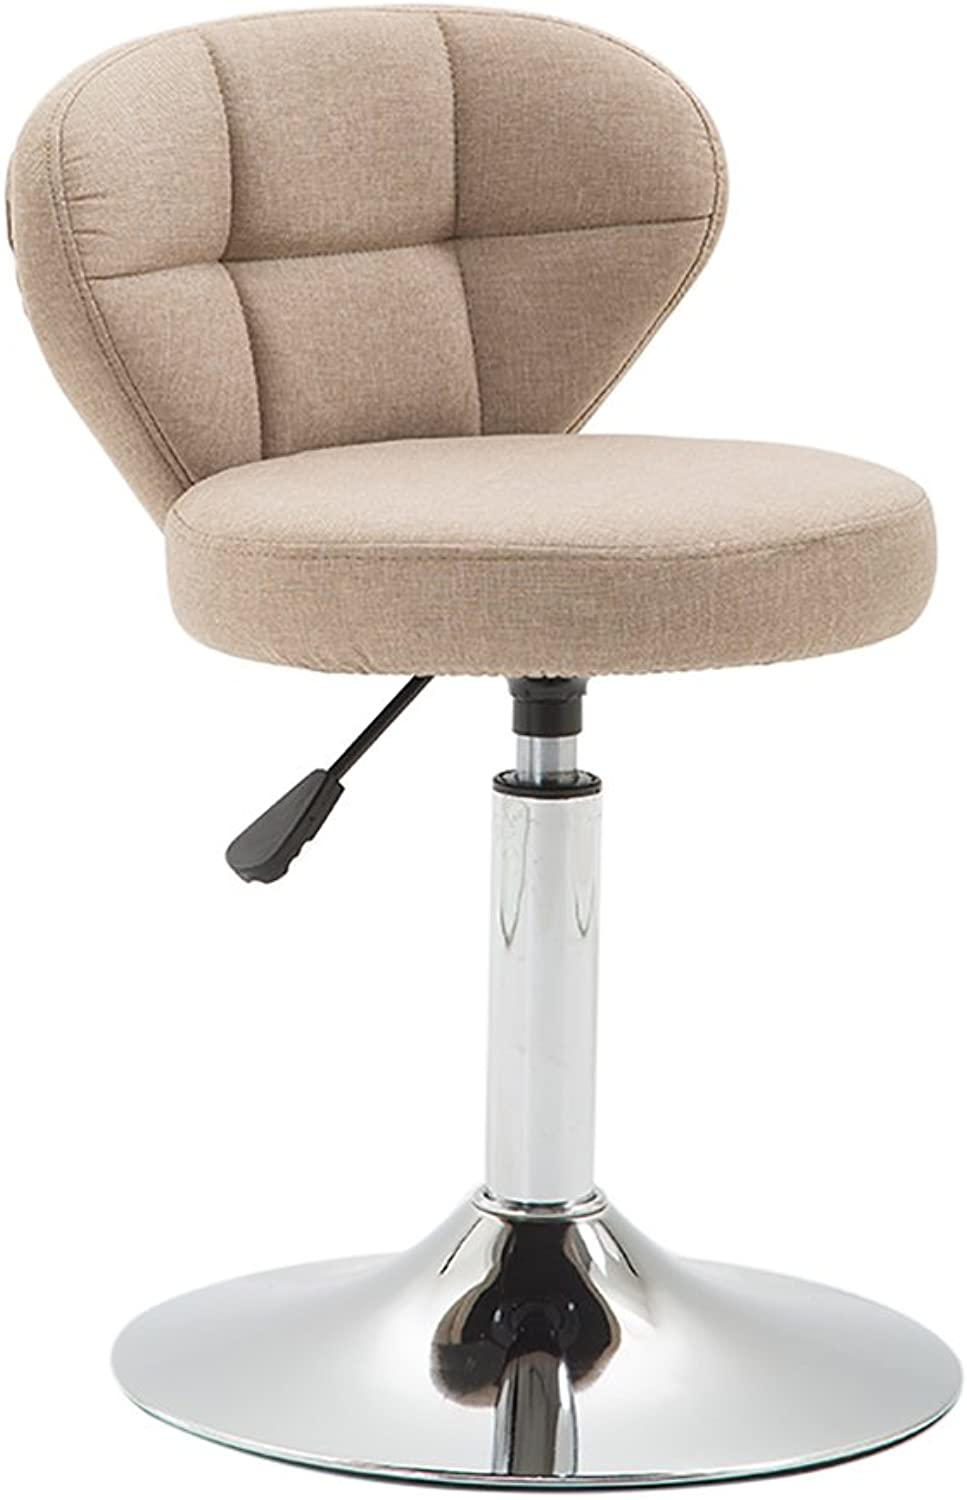 Ghjkl Beauty Roller Stool Swivel Chair,Adjustable Height,Cotton and Linen,360 Degree redation,10 cm Cushion, 4 Colours -by TIANTA (color   Khaki, Size   42-56cm)